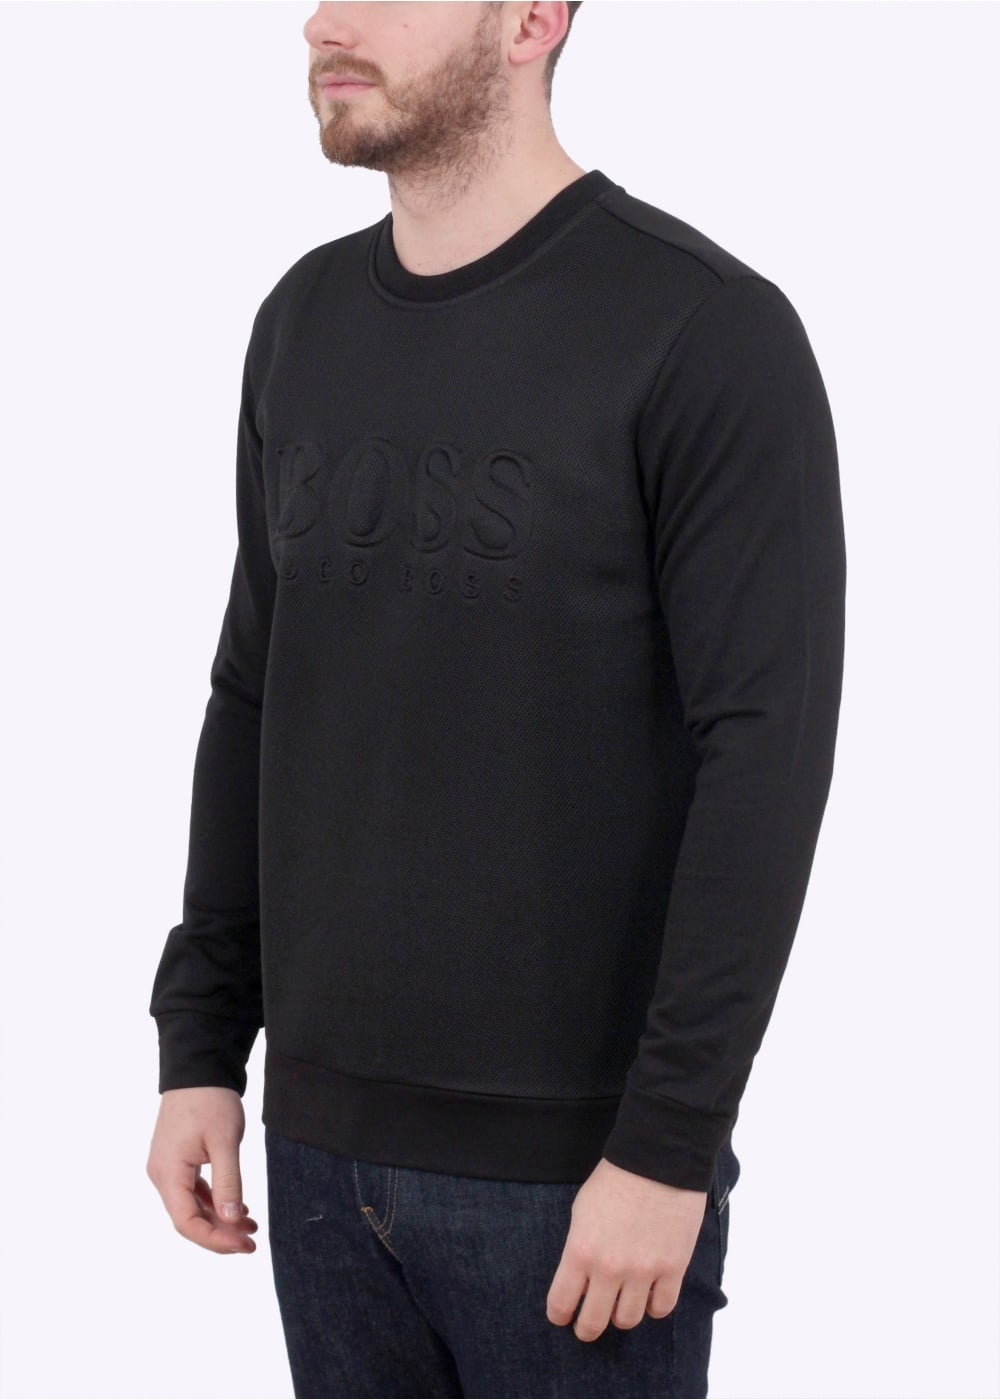 hugo boss sweater sale uk english sweater vest. Black Bedroom Furniture Sets. Home Design Ideas